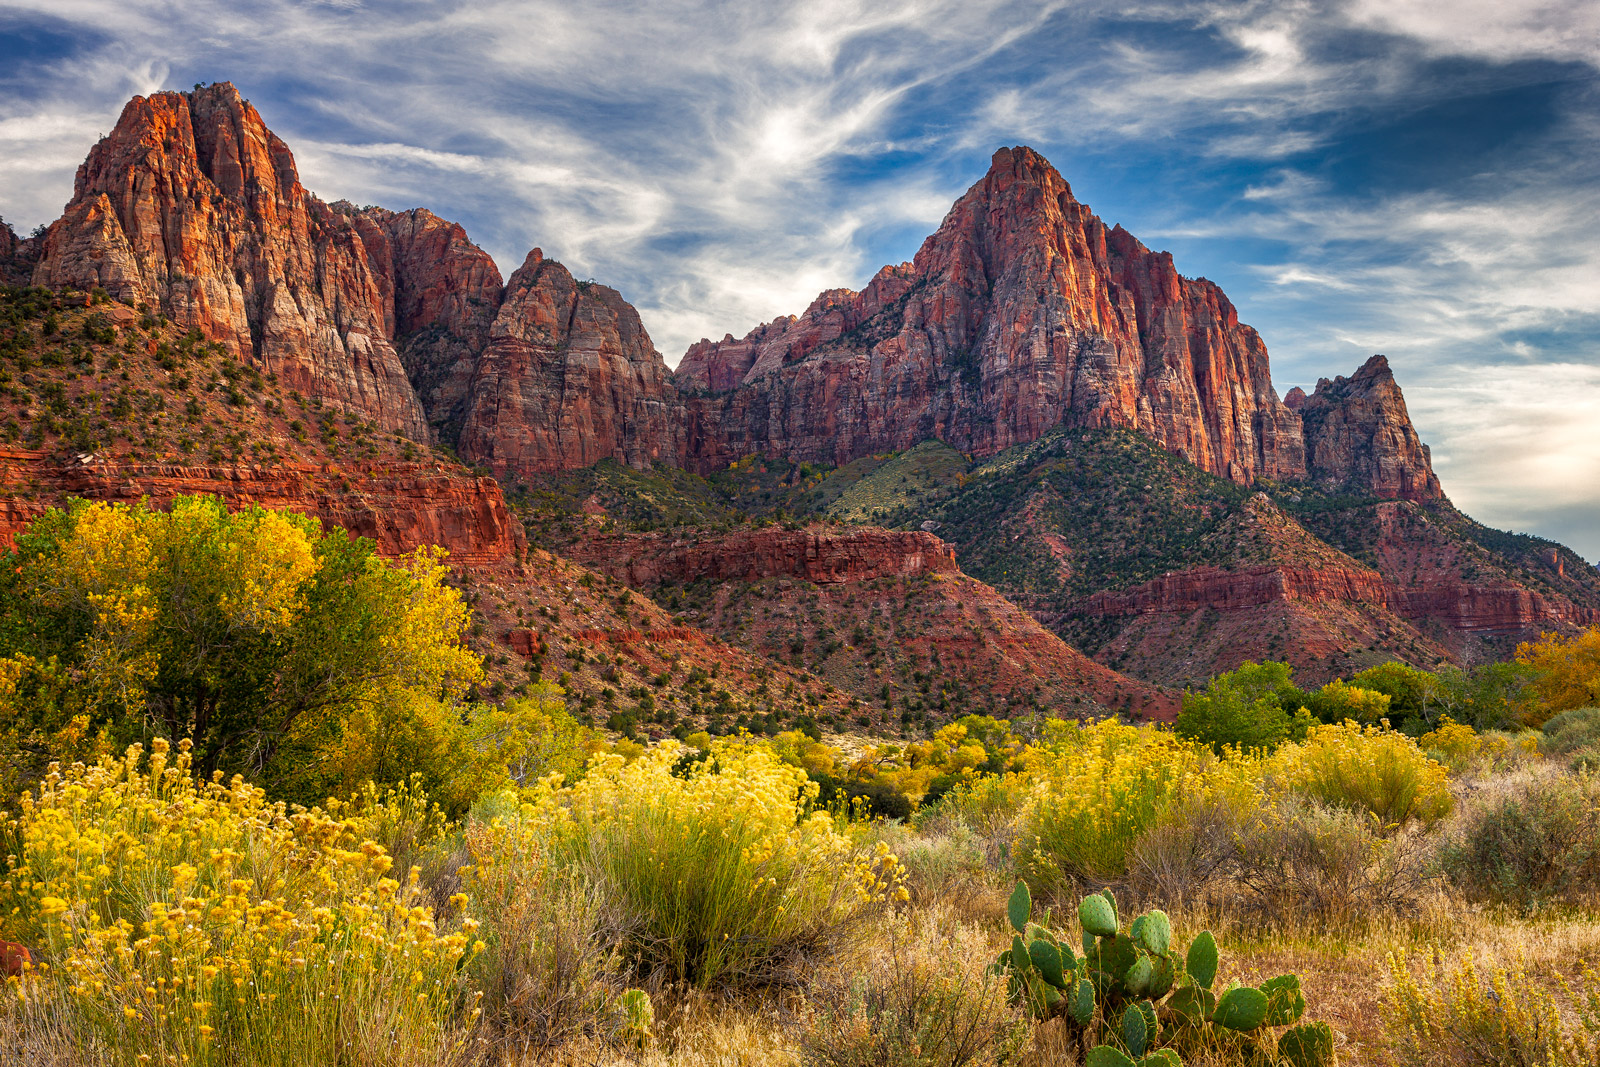 A Limited Edition photograph of The Watchman, a red rock mountain above a field of Fall color in Zion National Park in Utah....